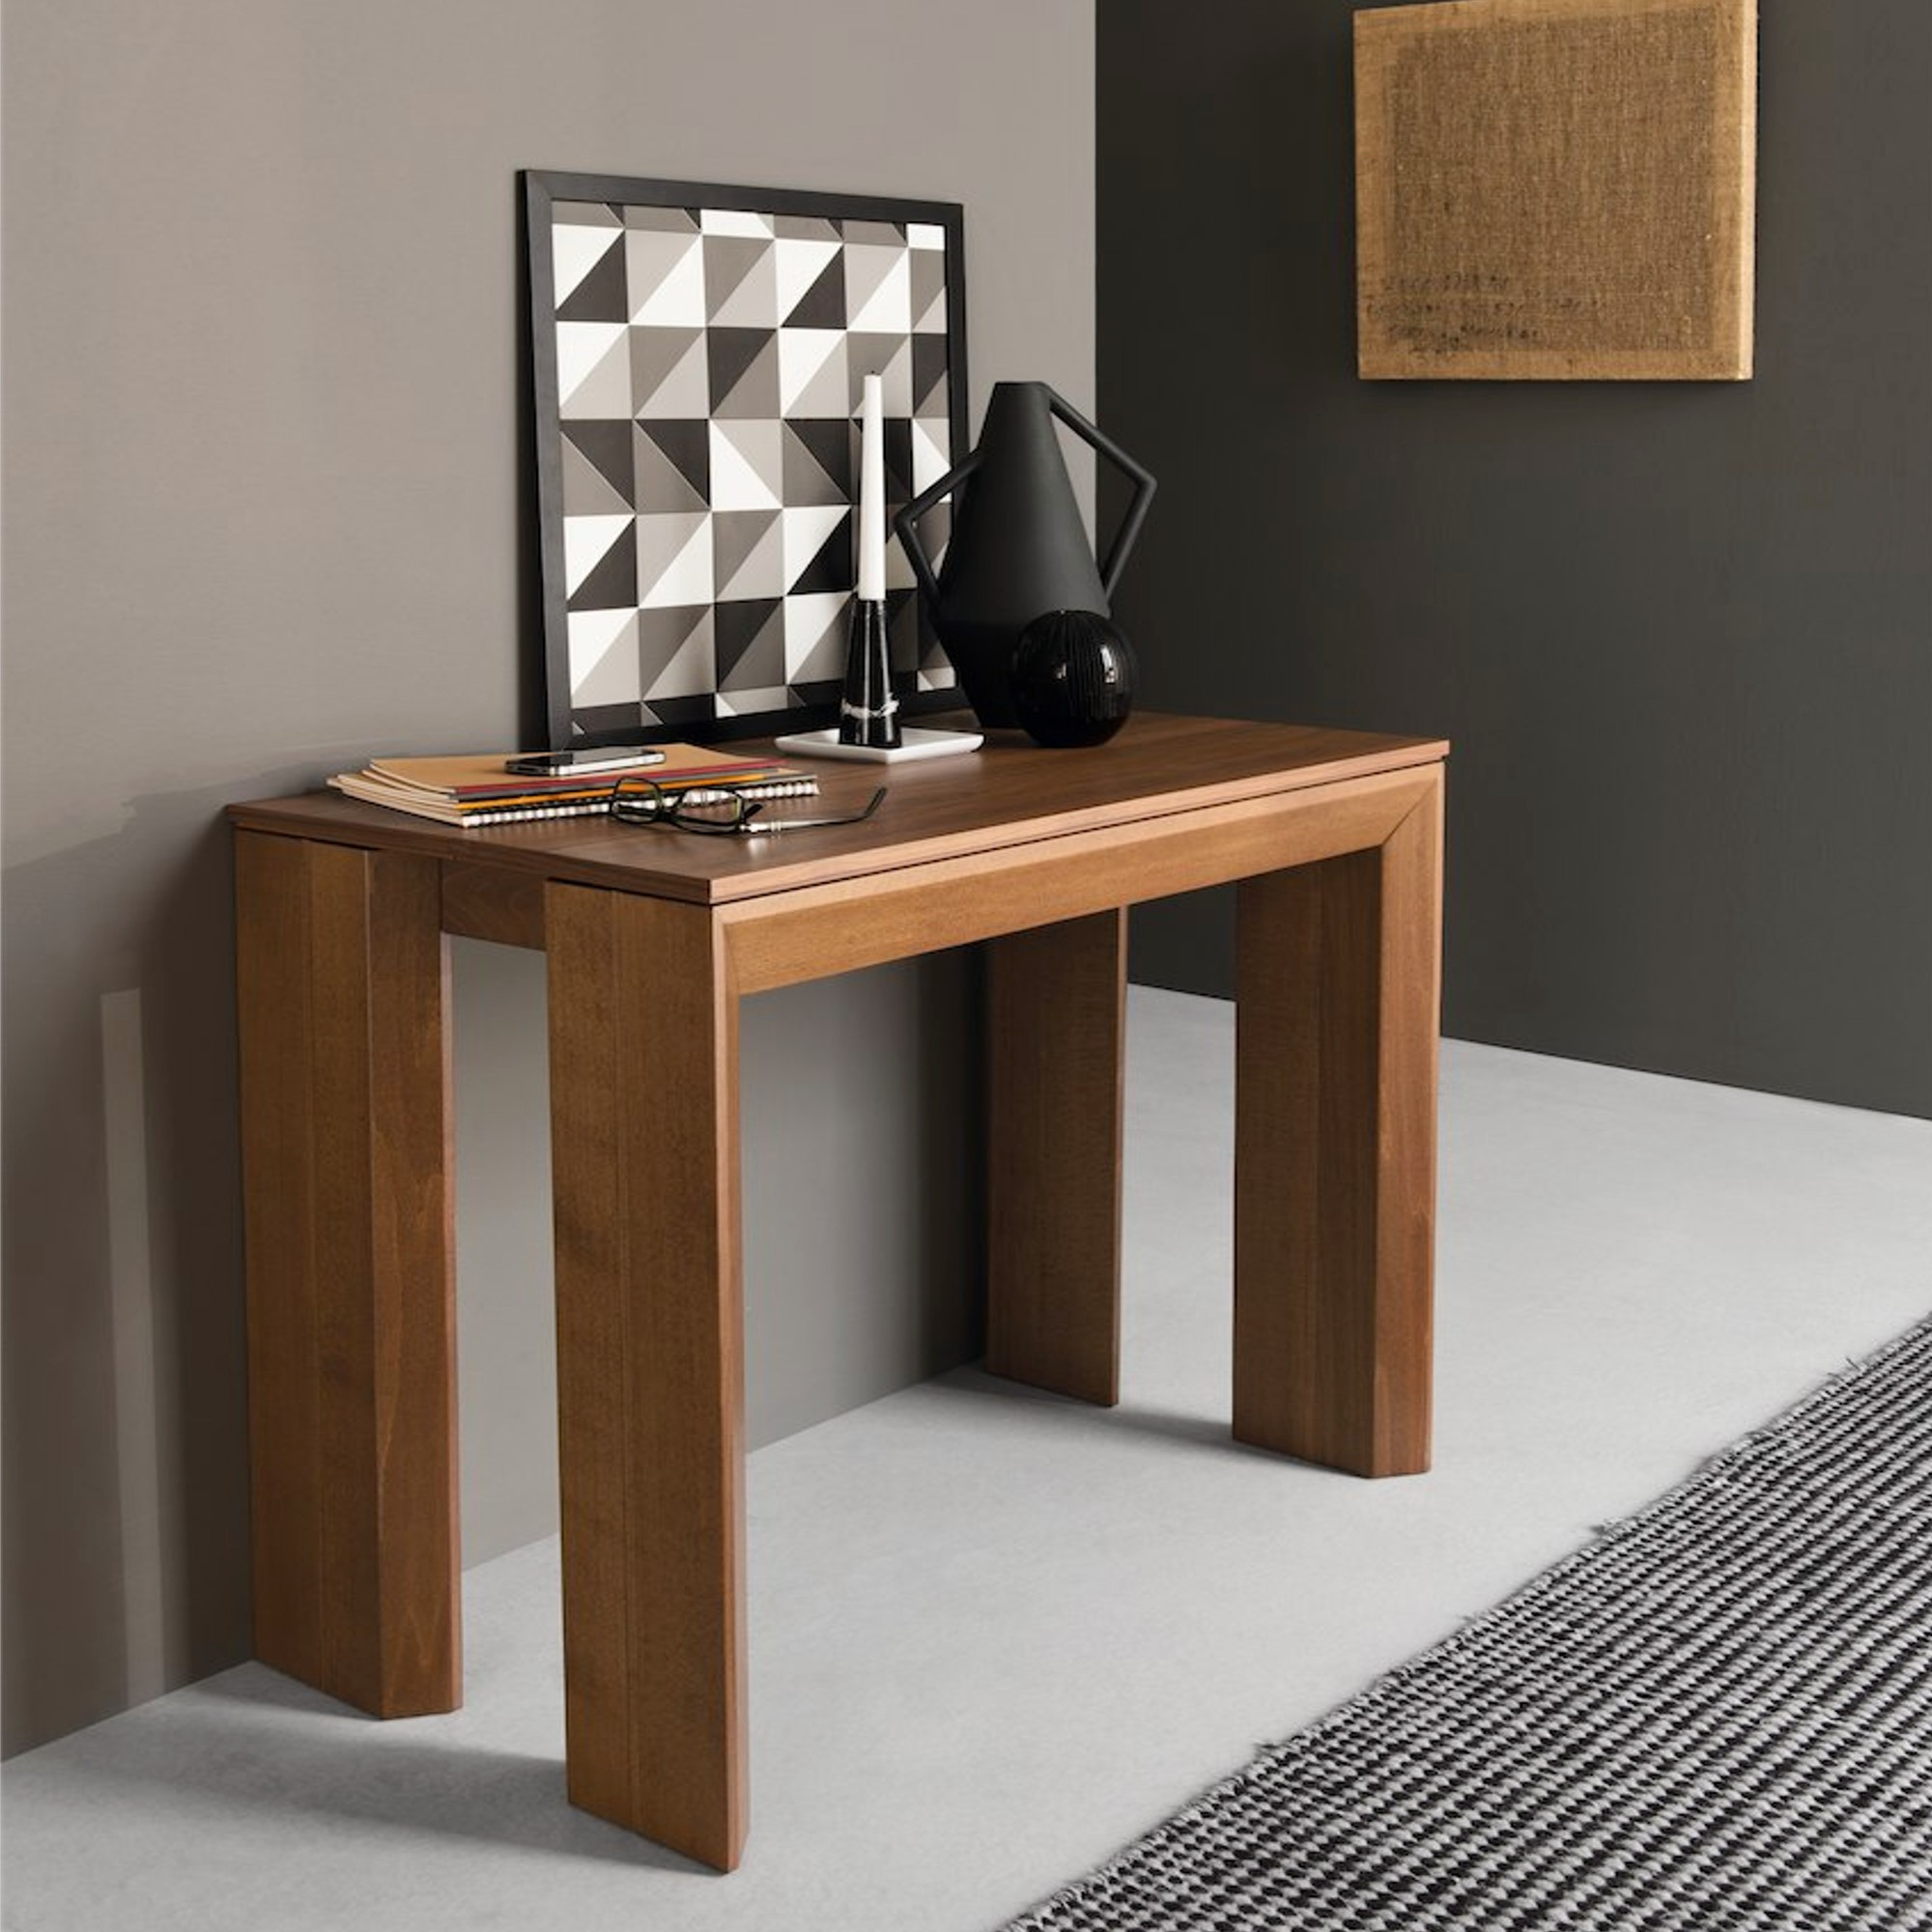 Calligaris Consolle Mistery.New Mistery